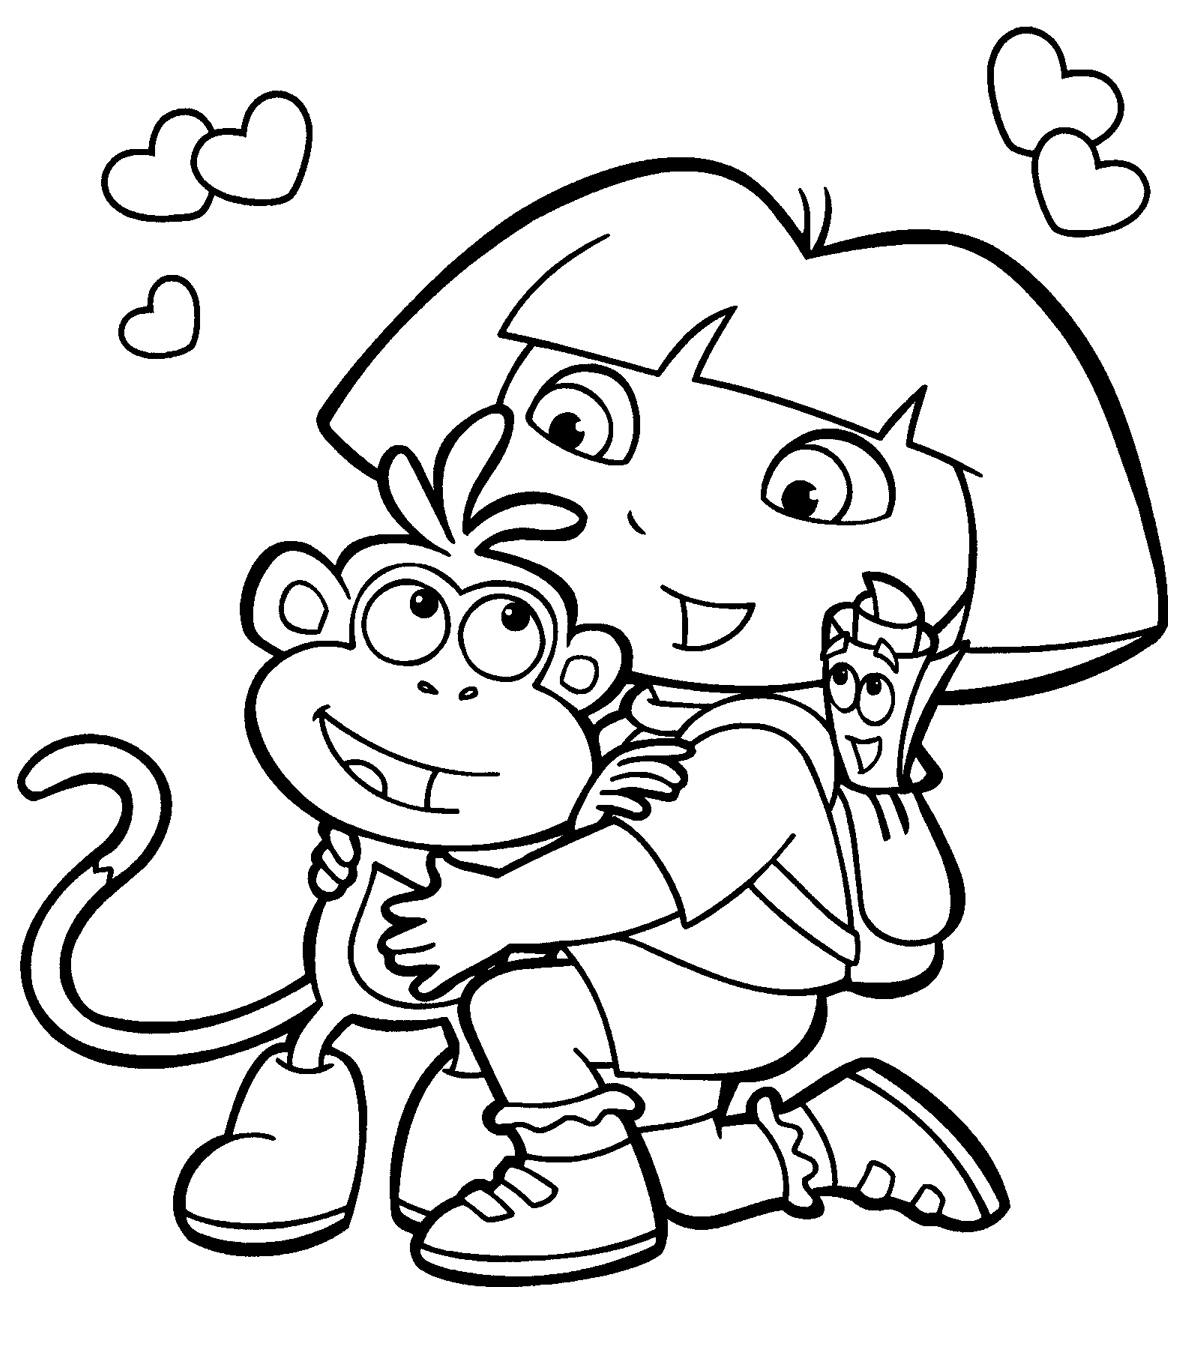 dora the explorer coloring page - Coloring Pictures For Kids